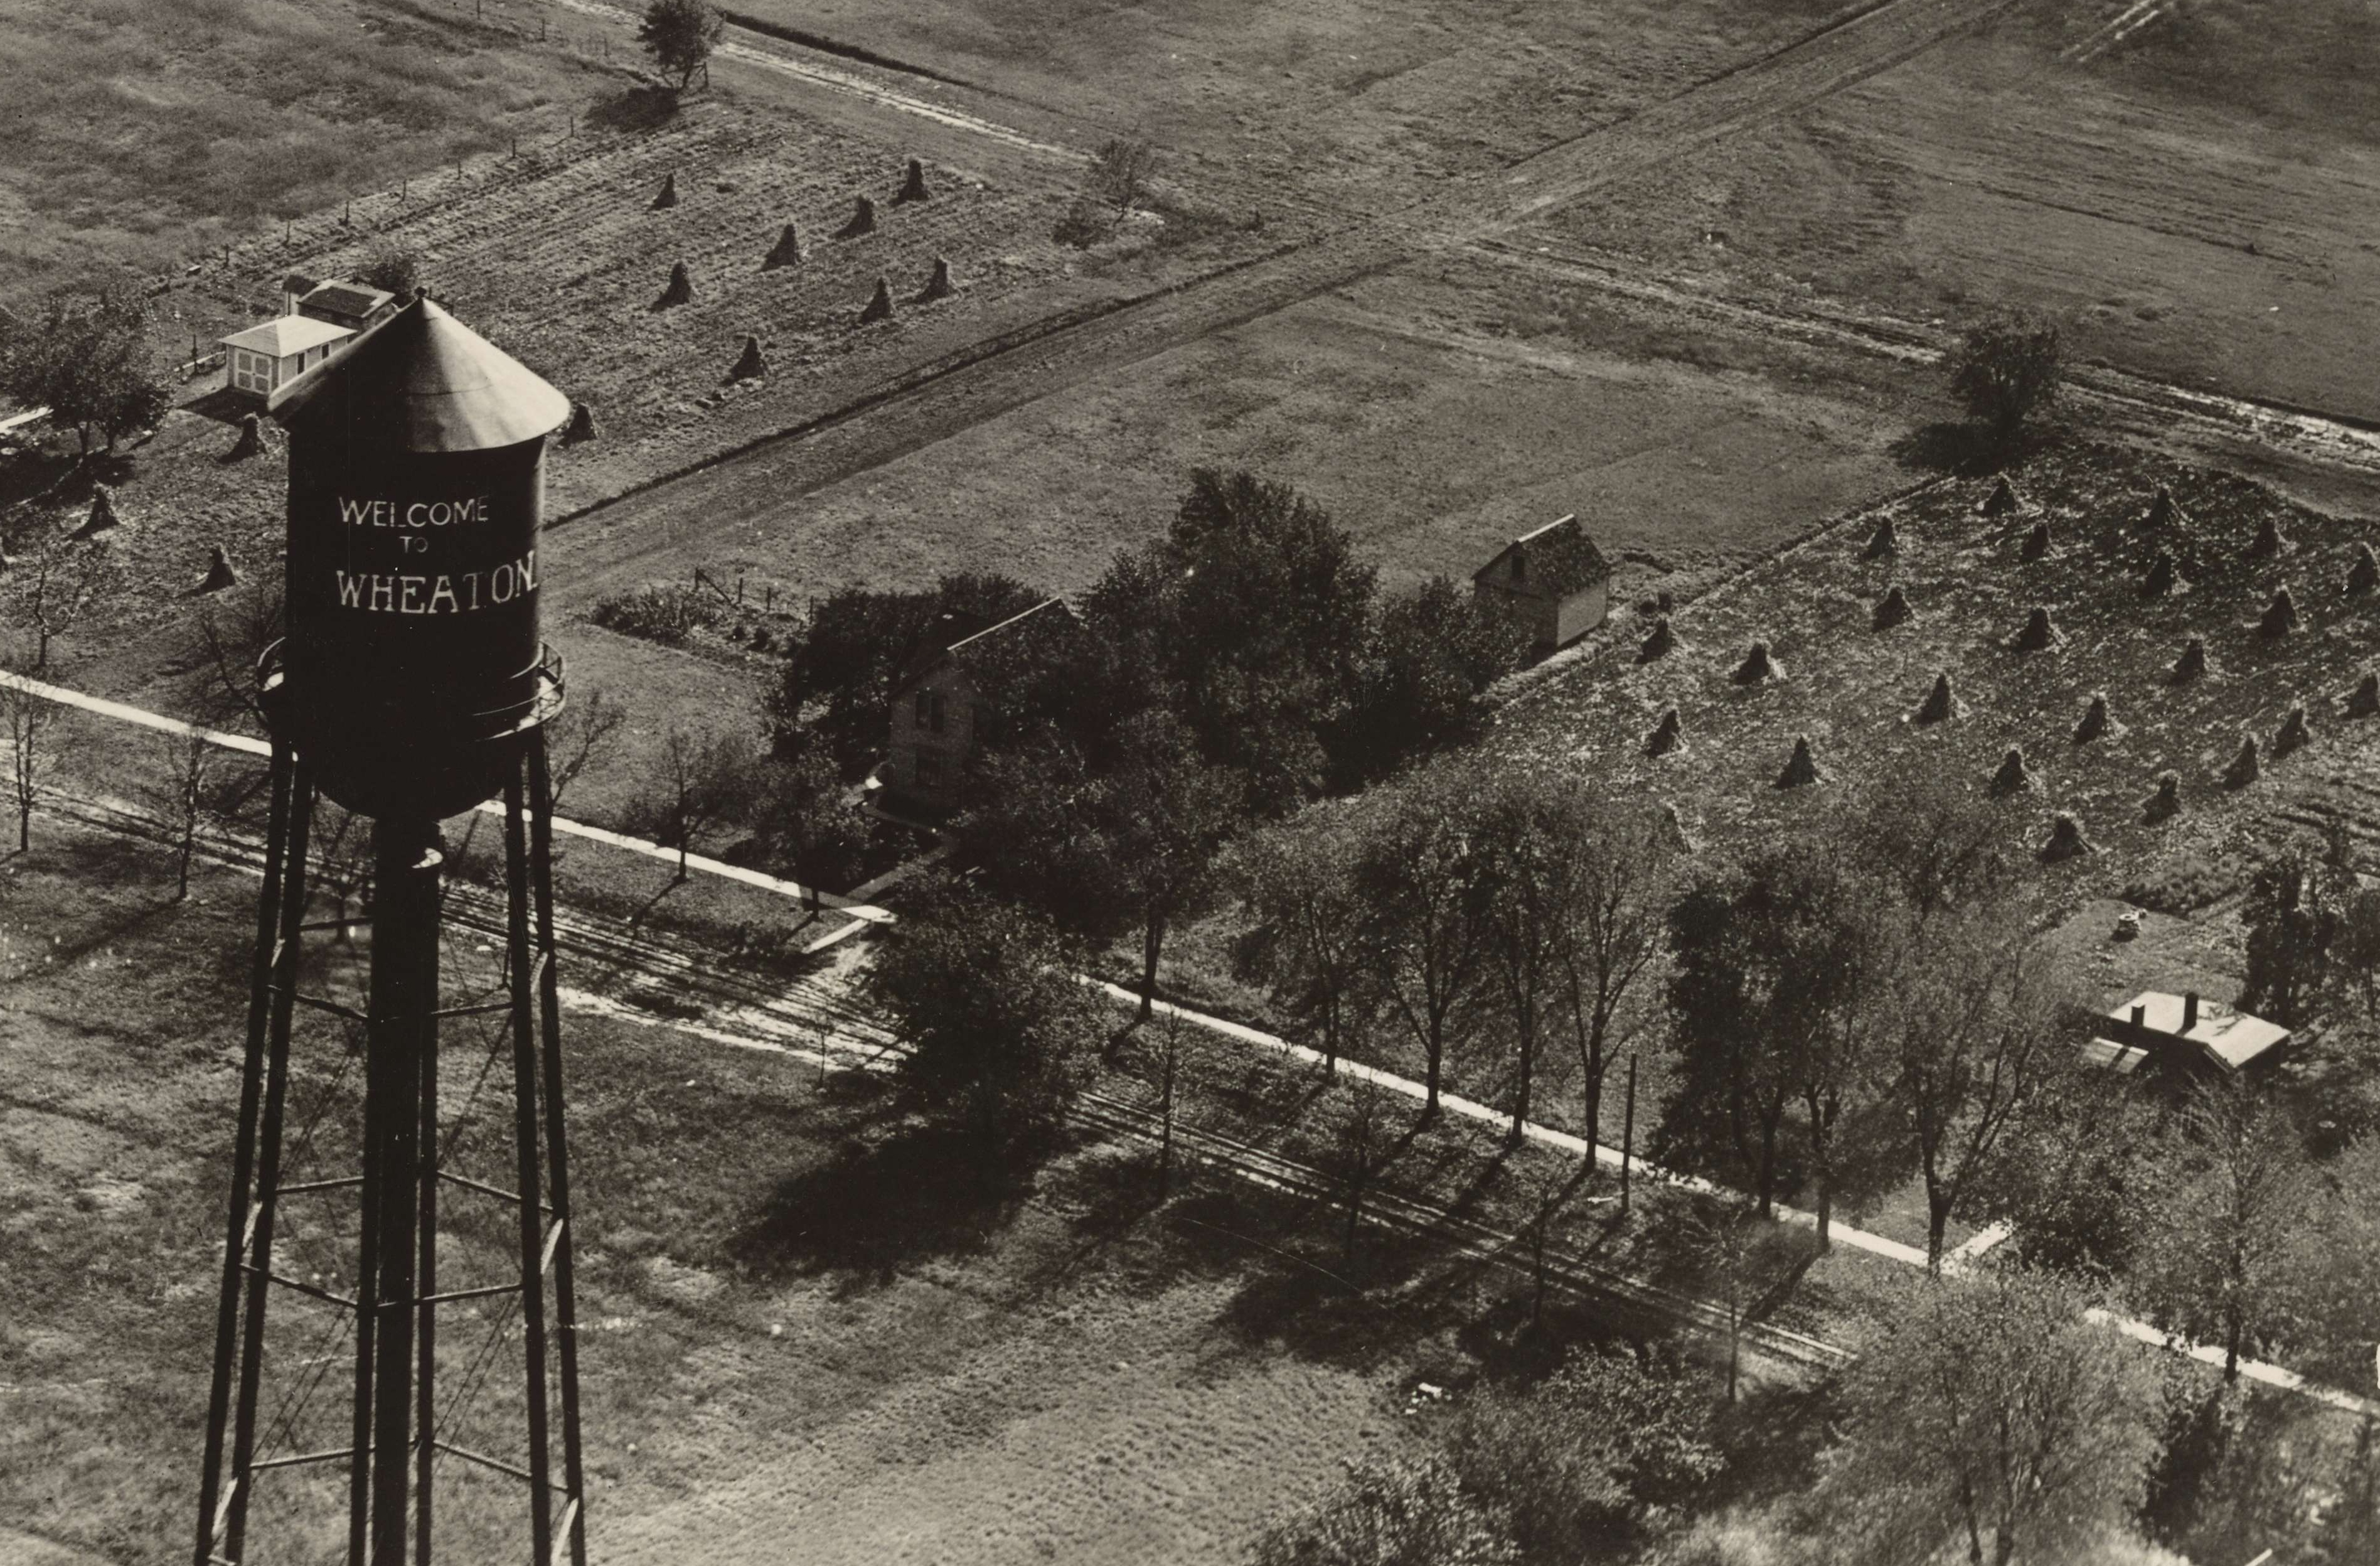 Airscape of Wheaton Water Tower, Millville, NJ